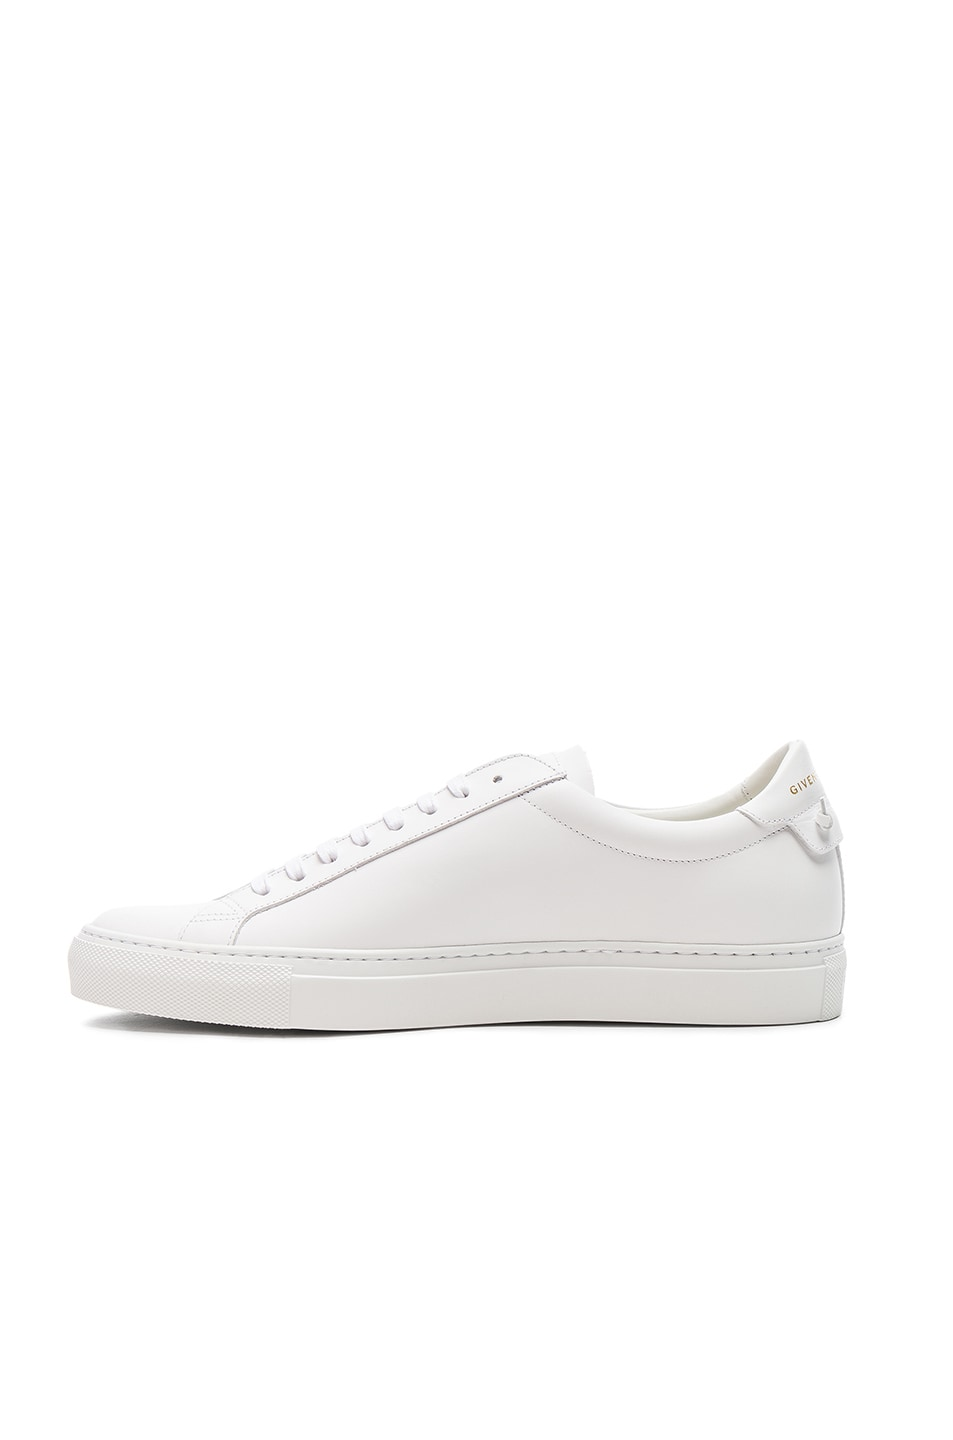 Image 5 of Givenchy Leather Urban Tie Knot Sneakers in White